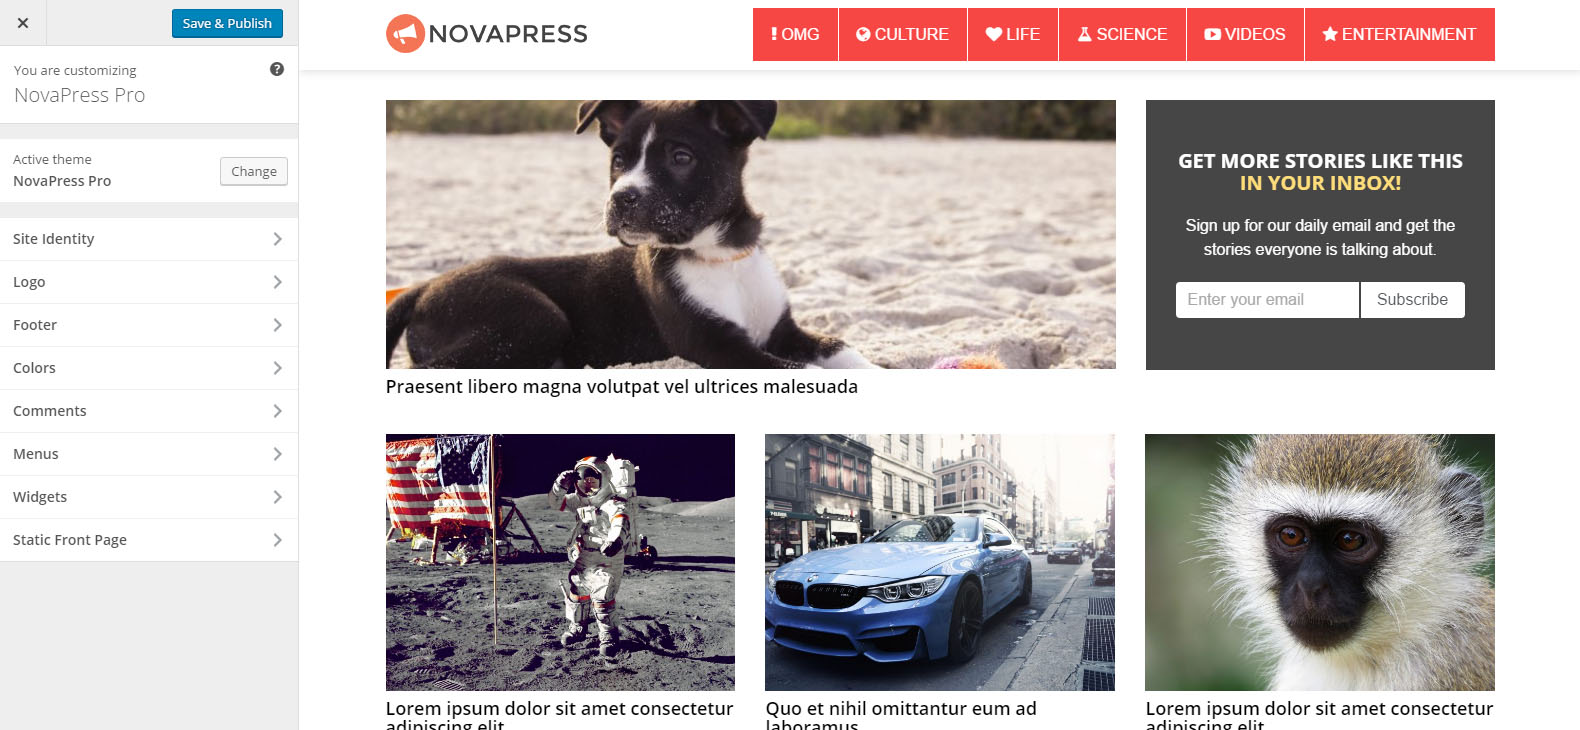 novapress-theme-screenshots2